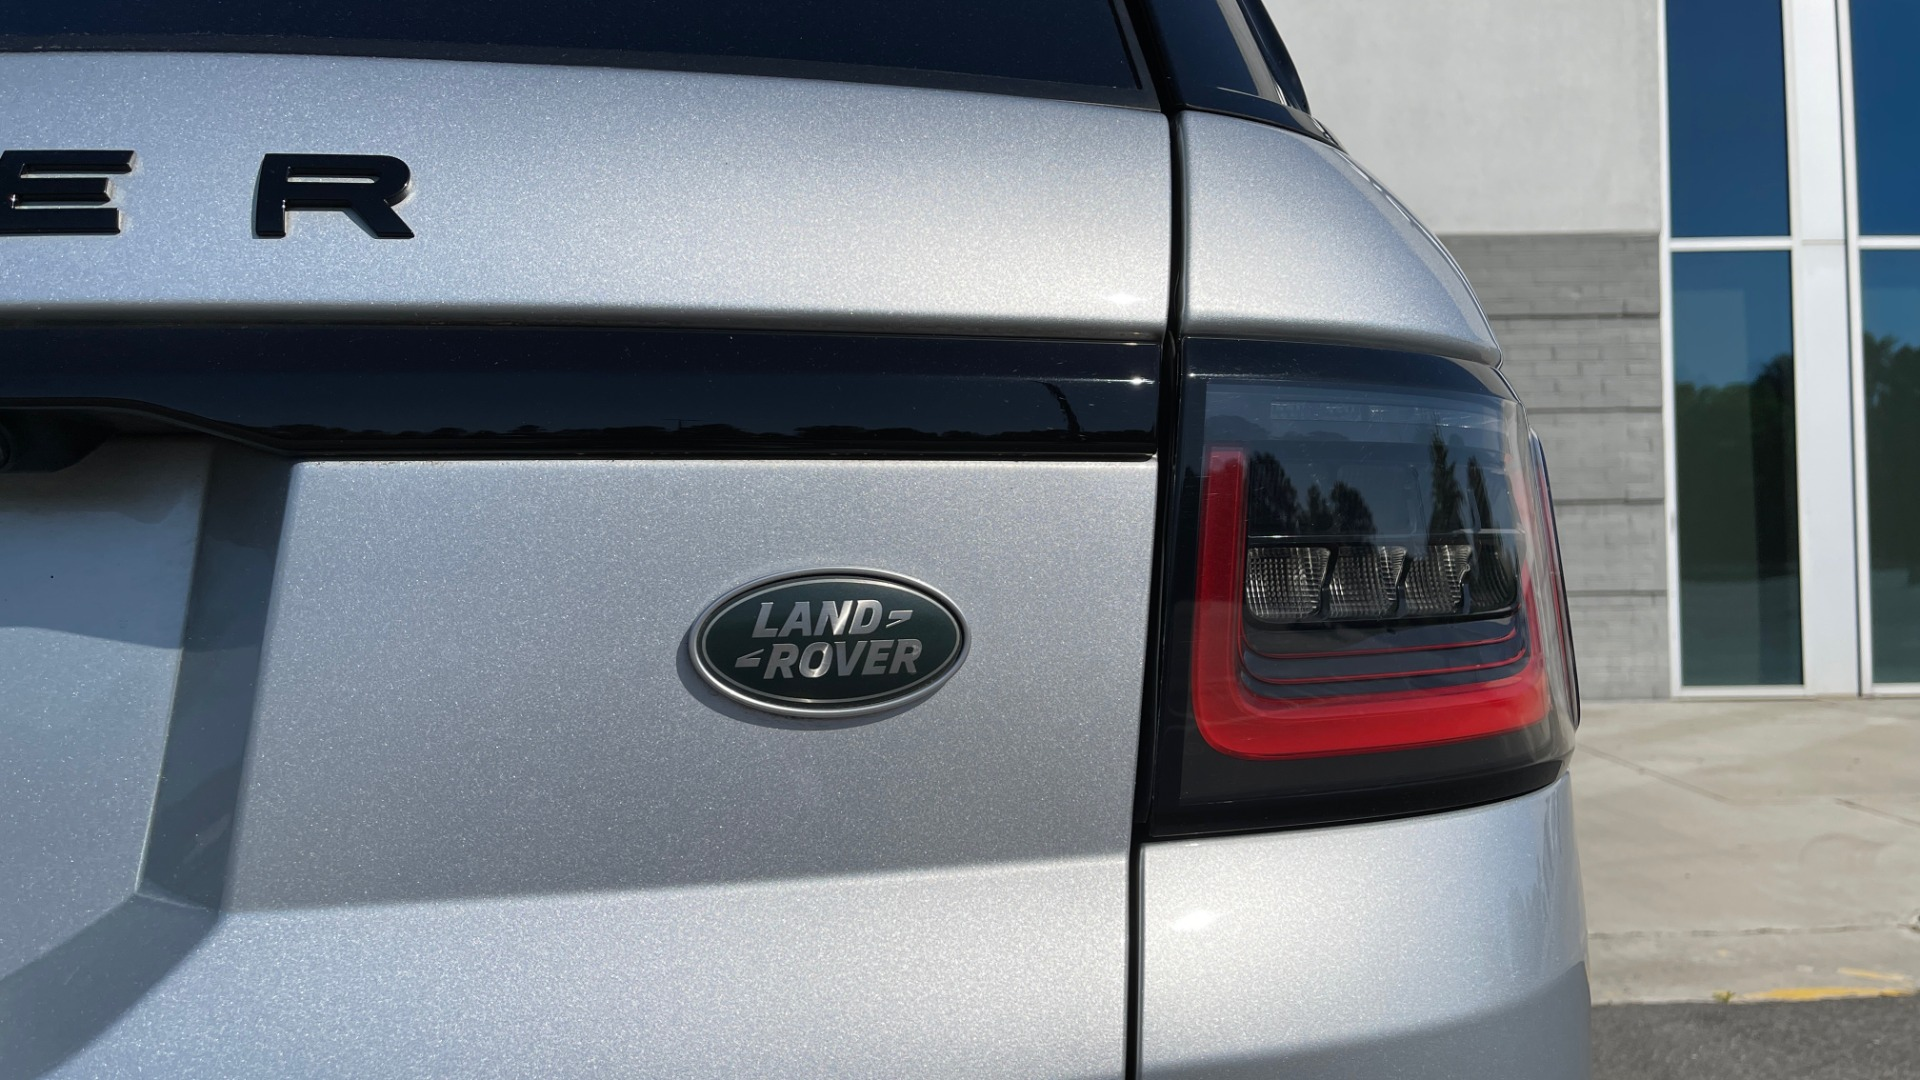 Used 2019 Land Rover RANGE ROVER SPORT HSE DYNAMIC / 3.0L SC V6 / 8-SPD / APPLE / NAV / SUNROOF / REARVIEW for sale Sold at Formula Imports in Charlotte NC 28227 25